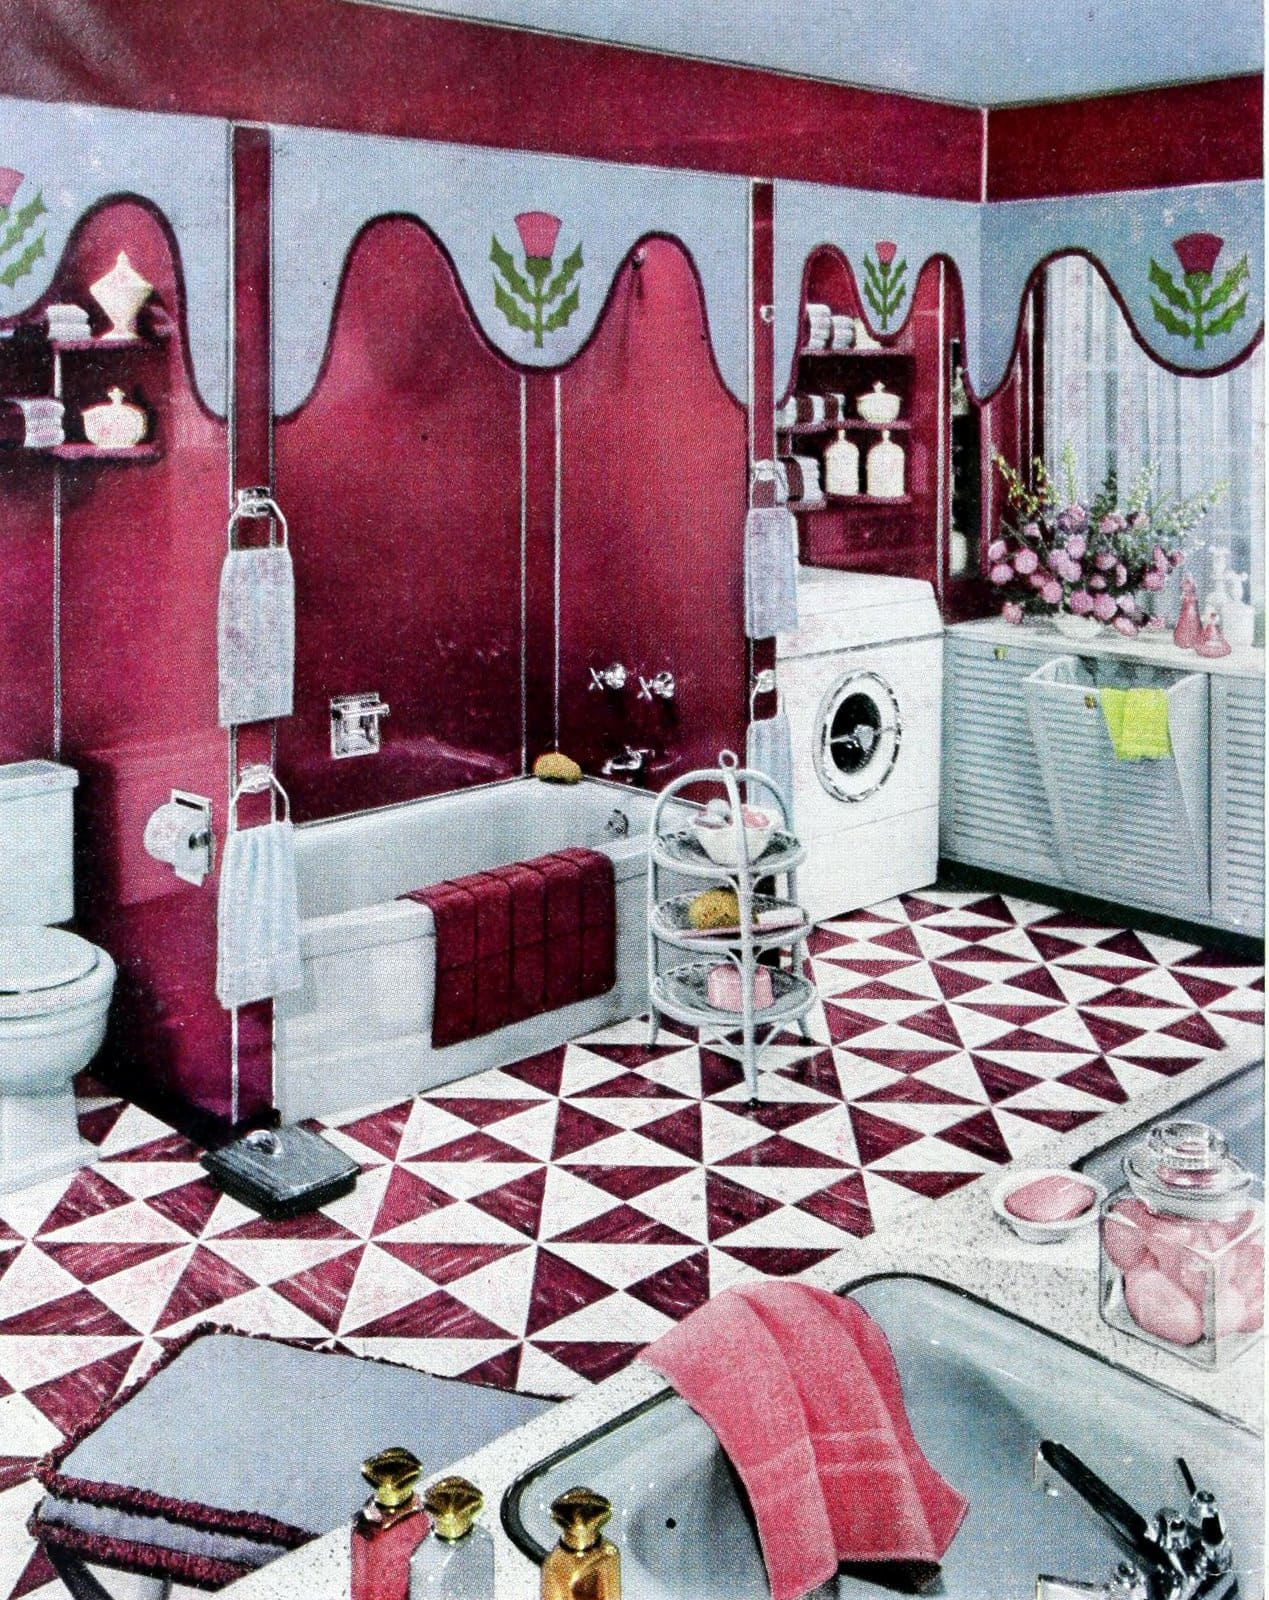 Red and white triangle square retro fifties flooring style for a bathroom